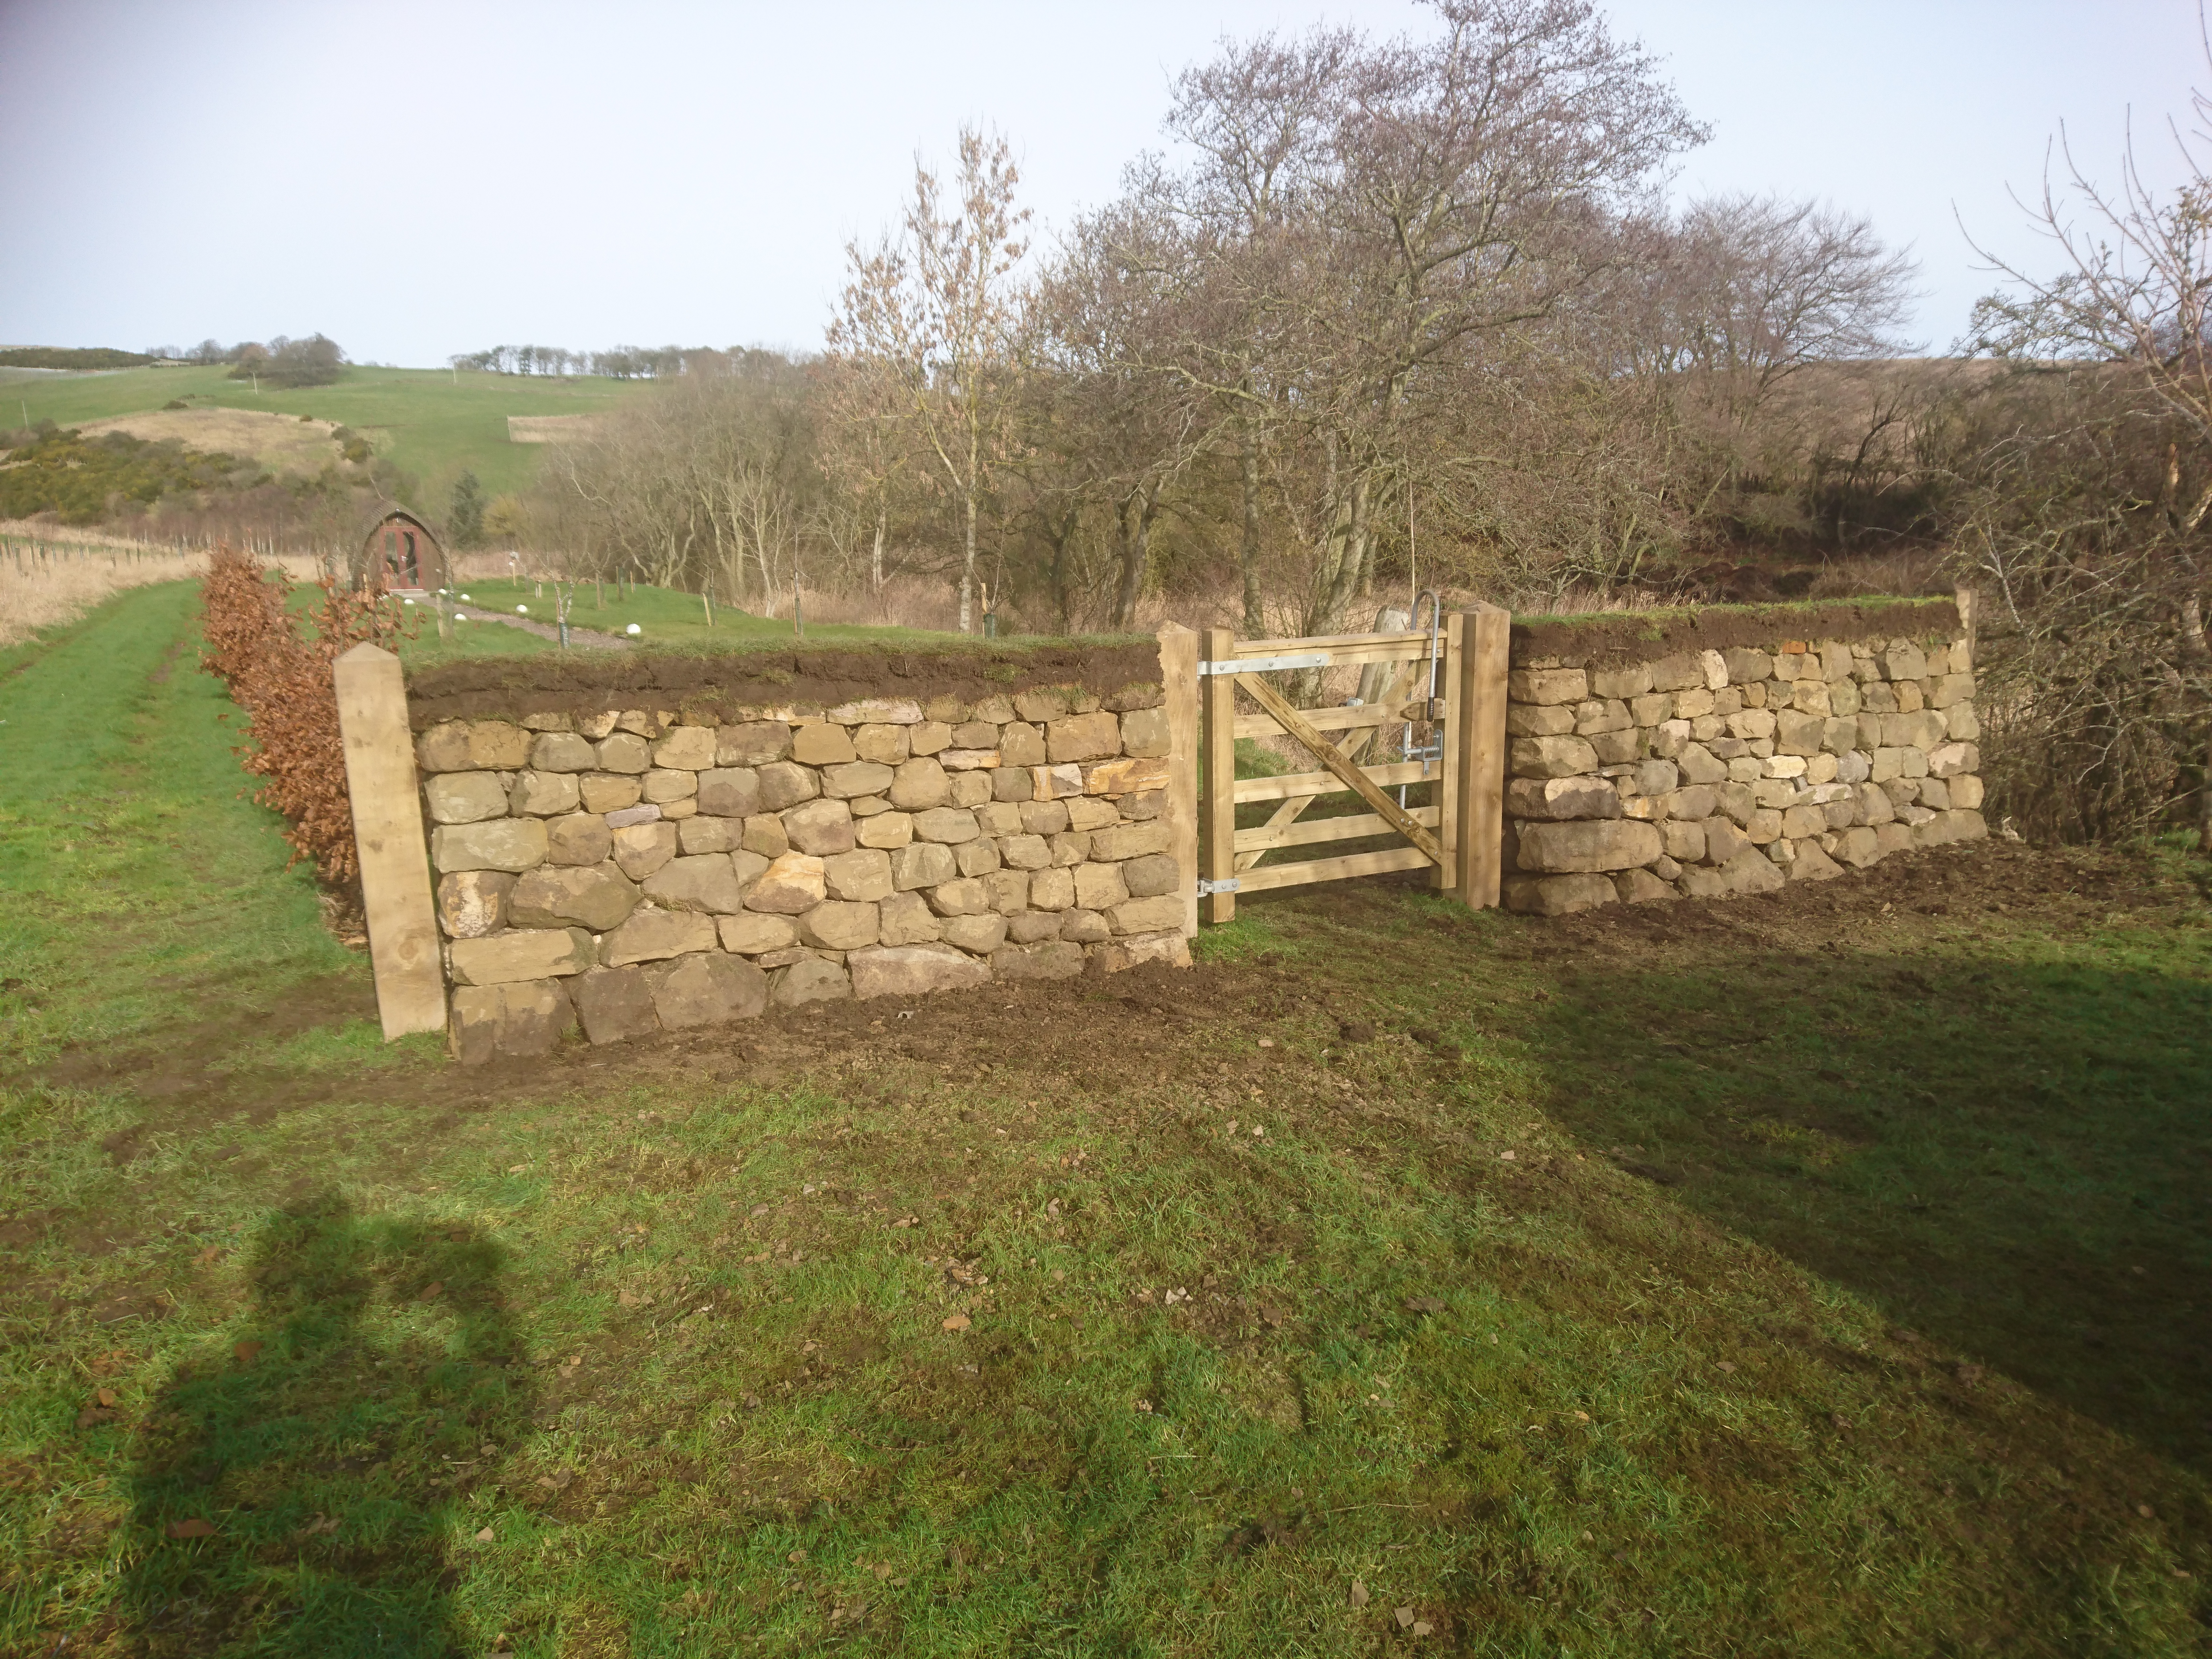 Free-standing dry stone walls